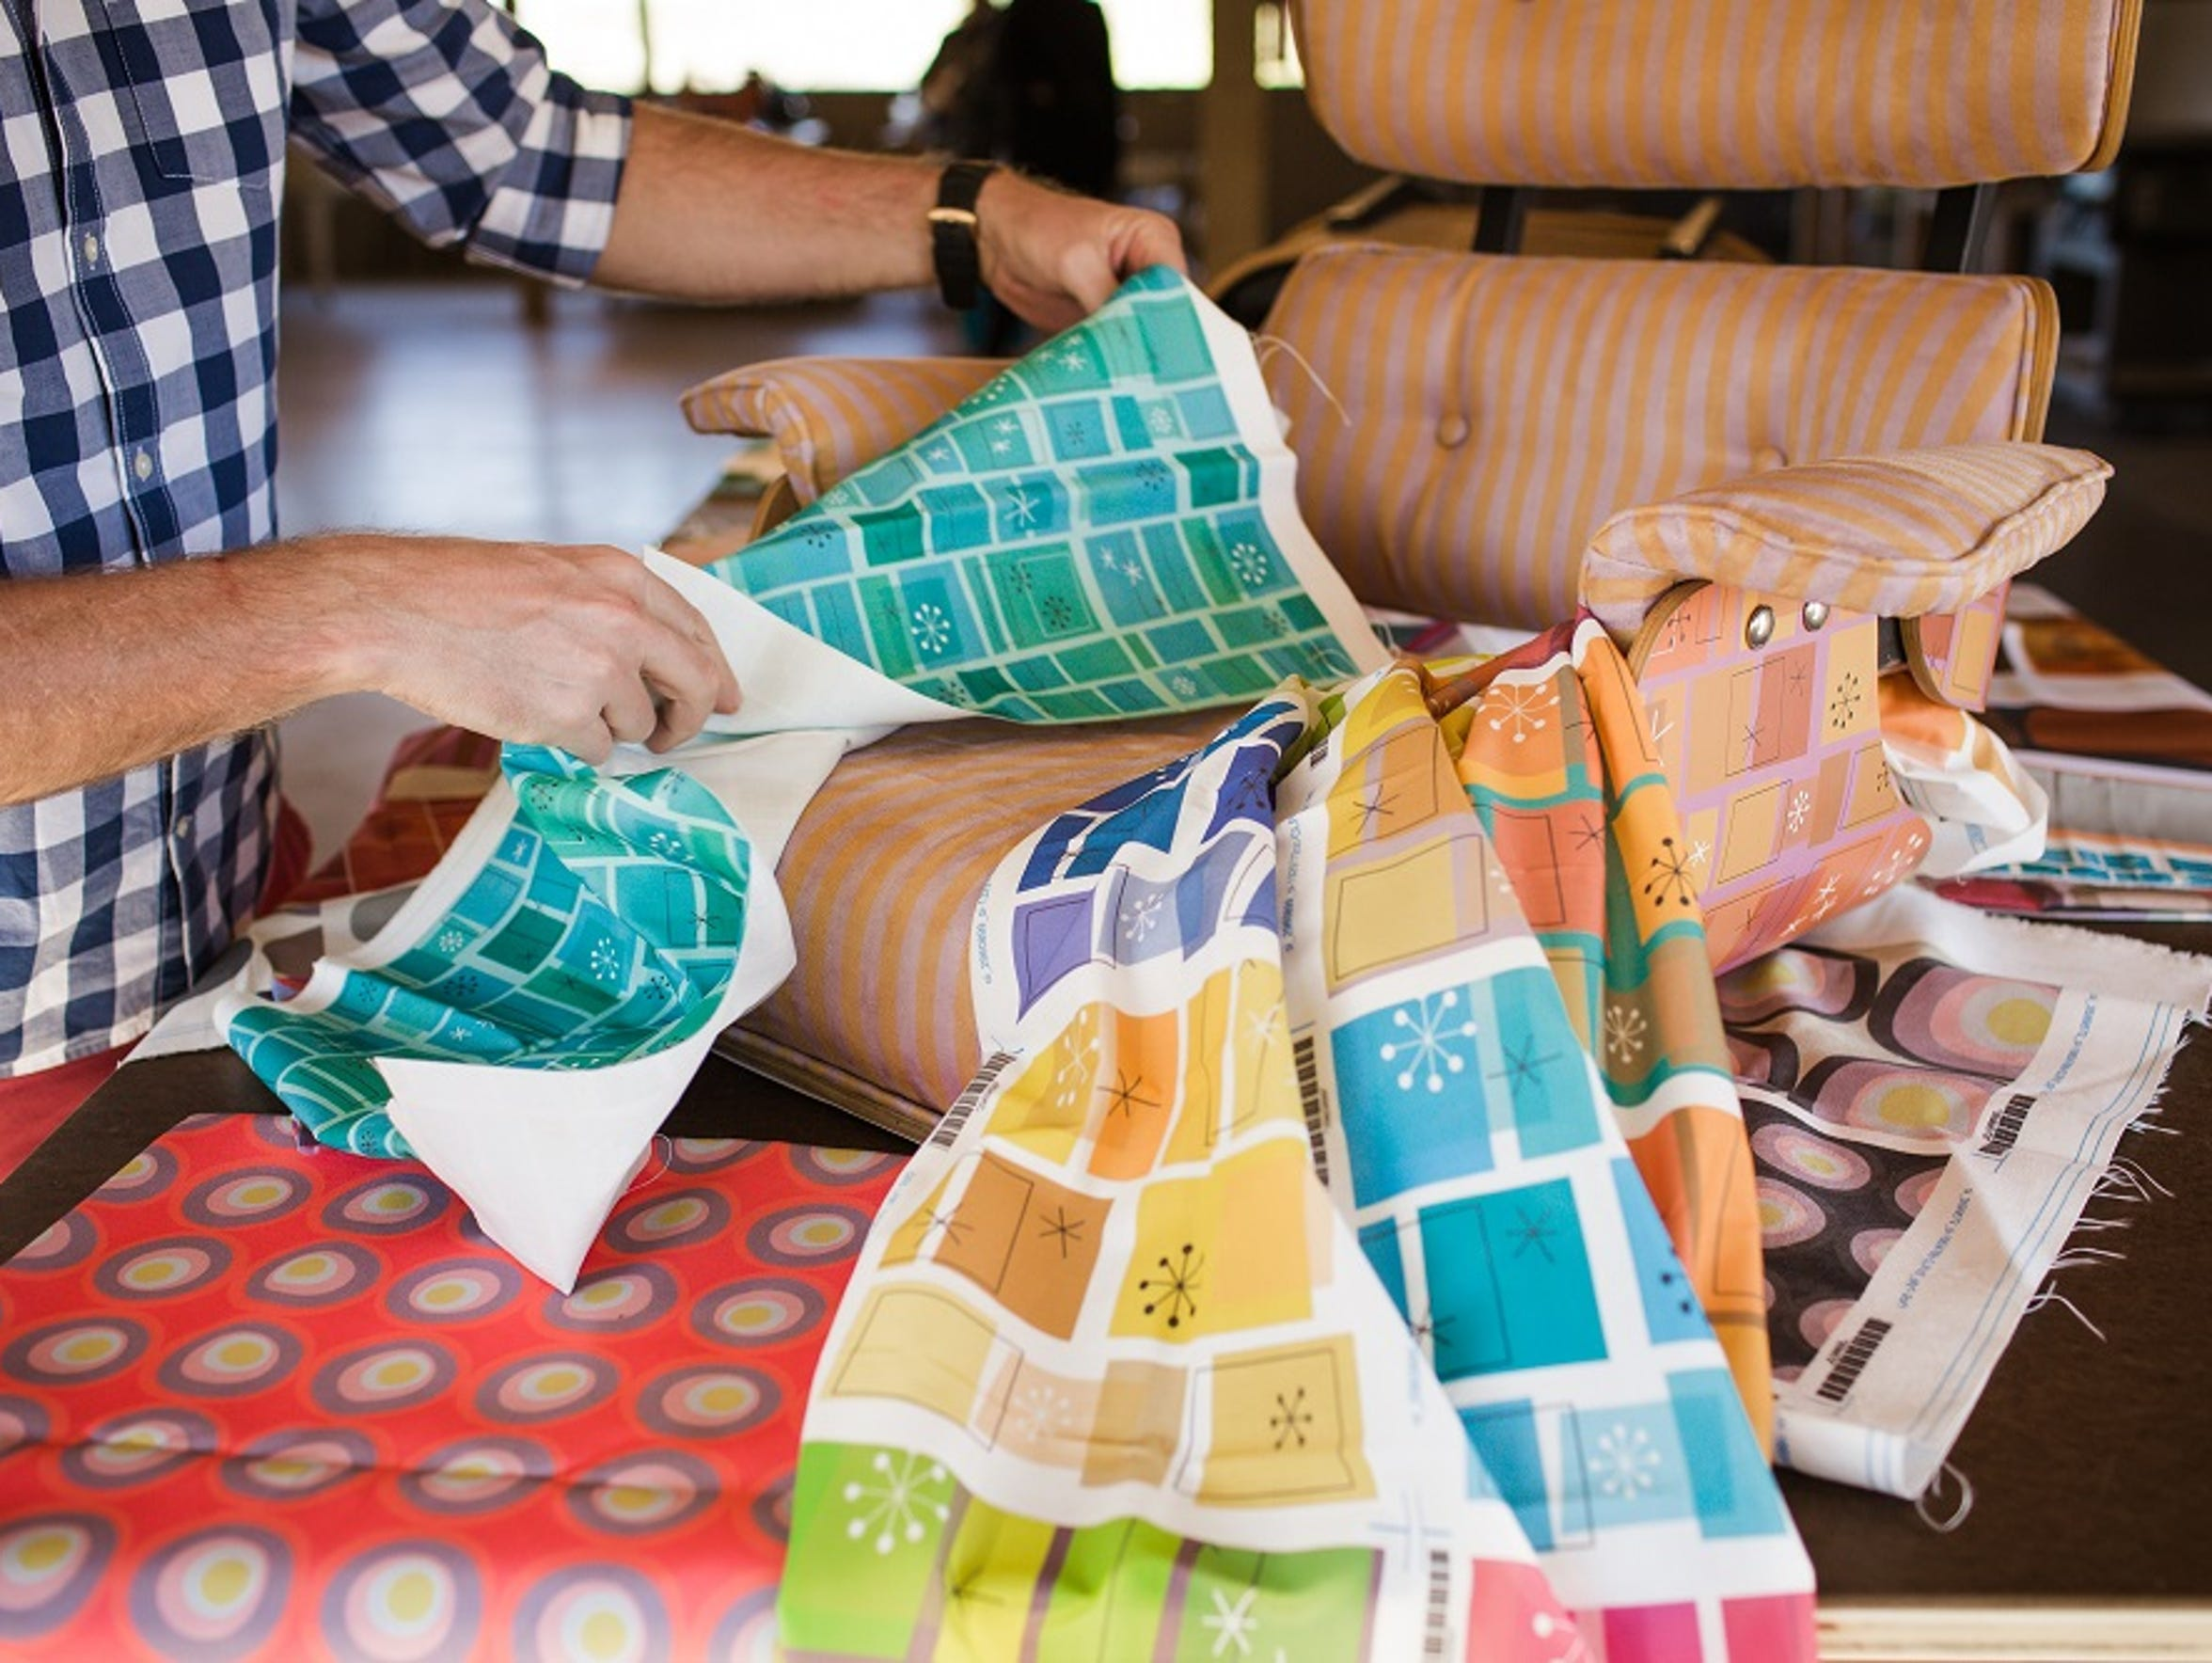 Kurt Cyr shows off his textile designs and plans to